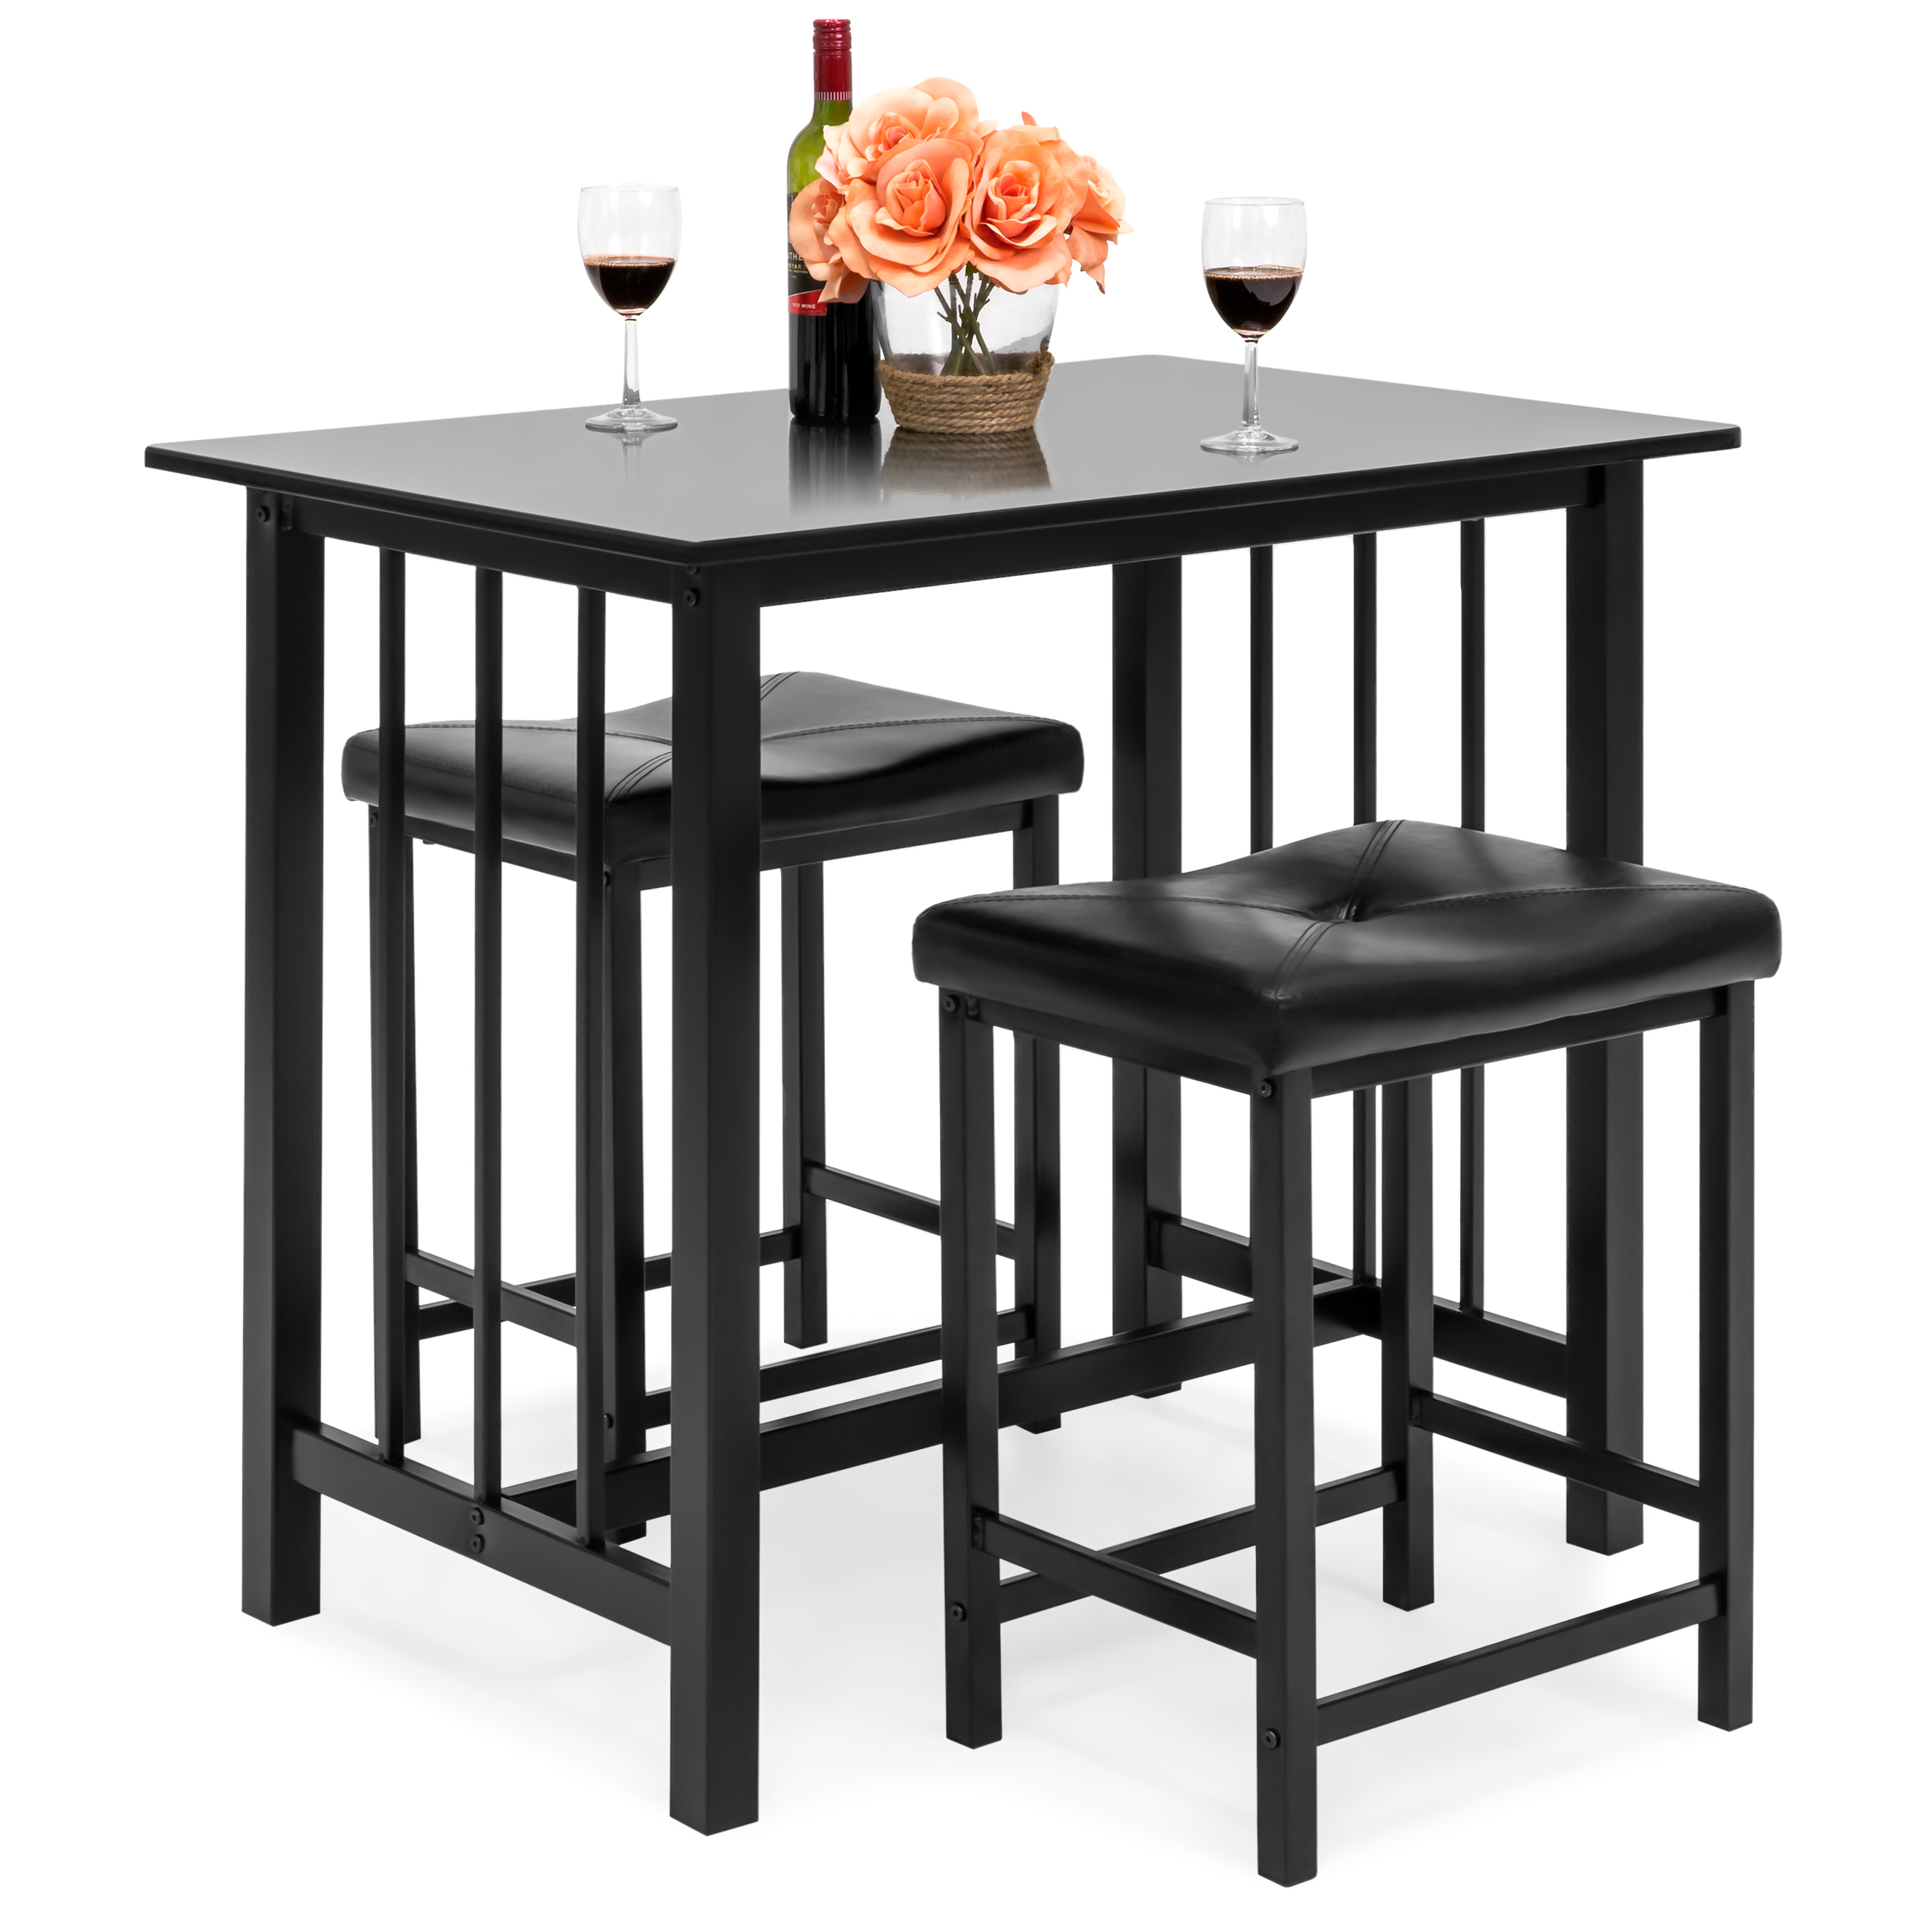 Best Choice Products Kitchen Marble Table Dining Room Set w  2 Counter Height Stools (Black) by Best Choice Products